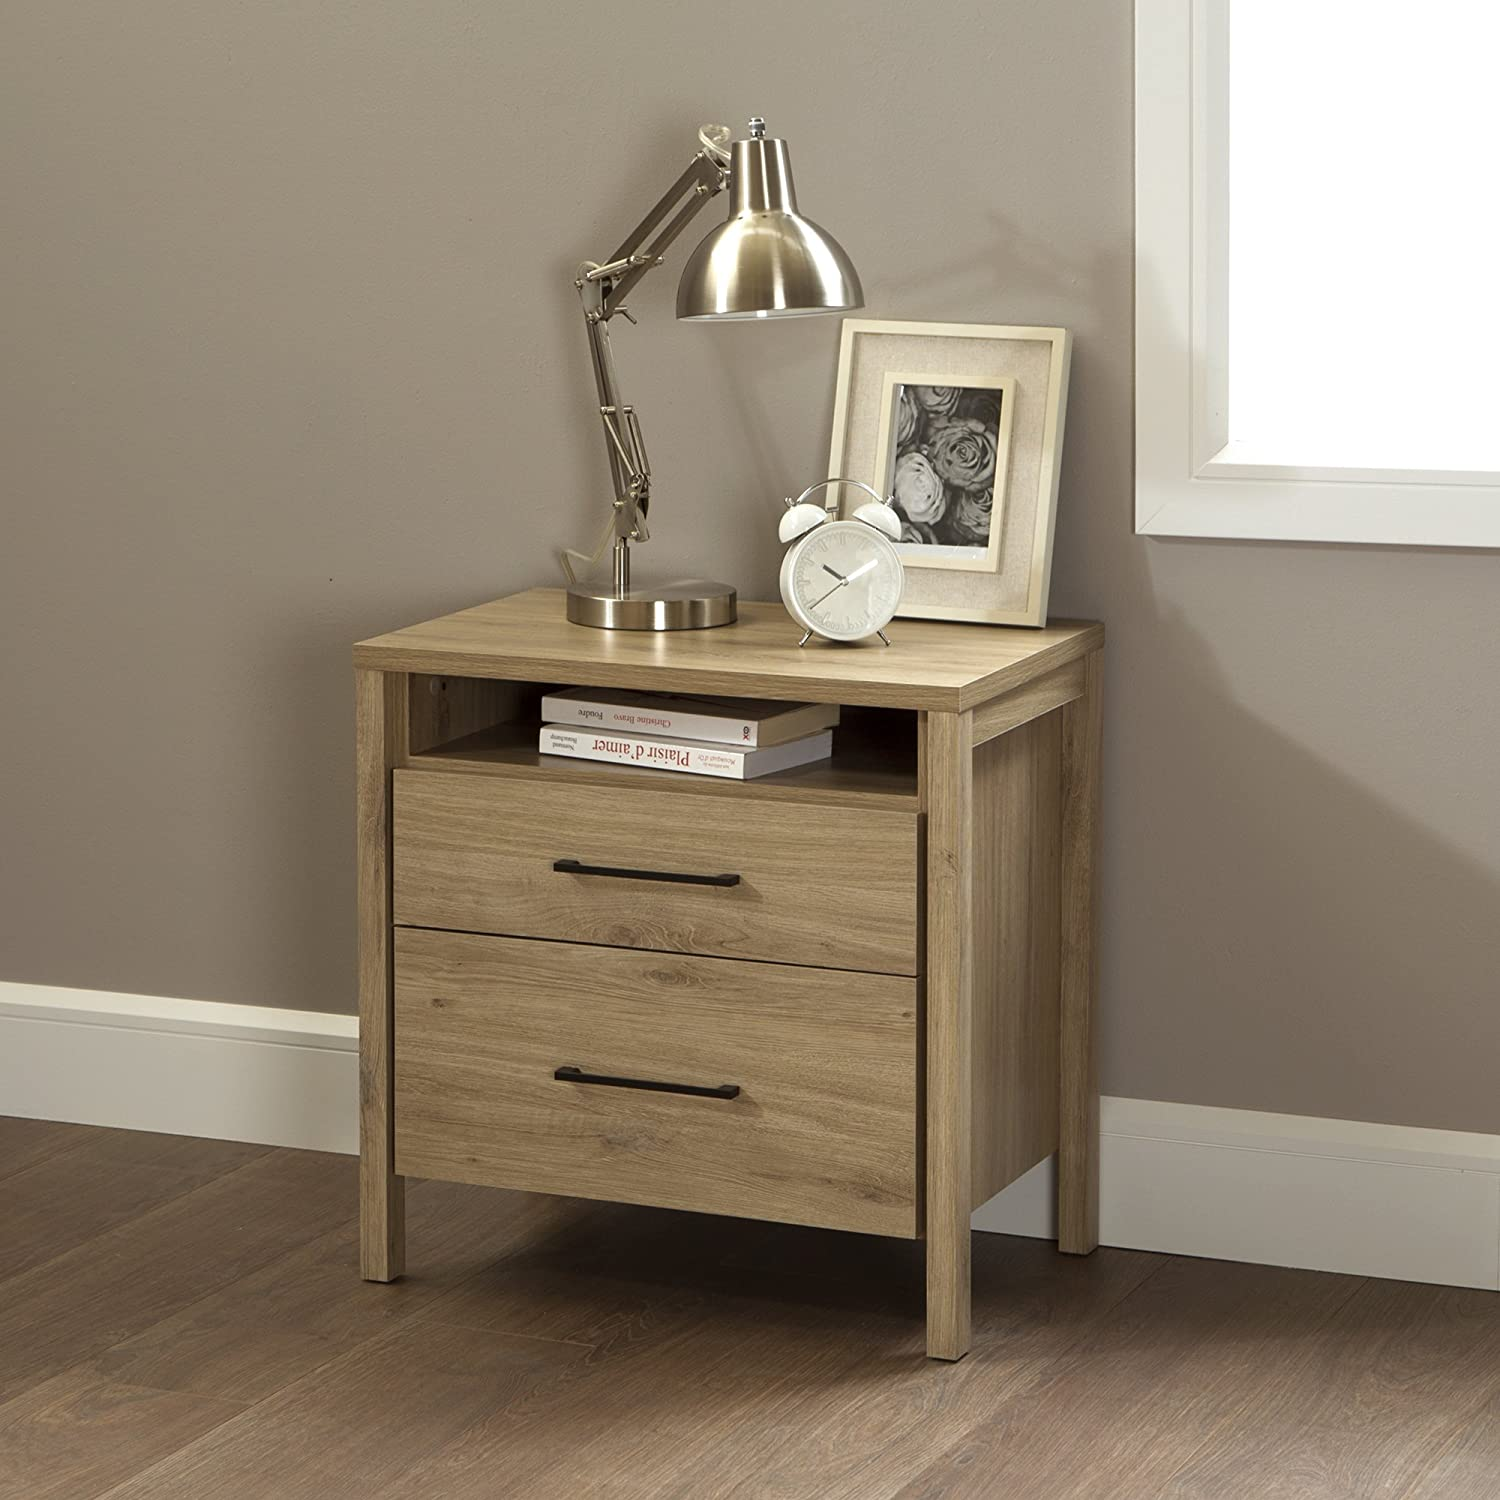 Amazon South Shore Gravity 2 Drawer Nightstand Rustic Oak With